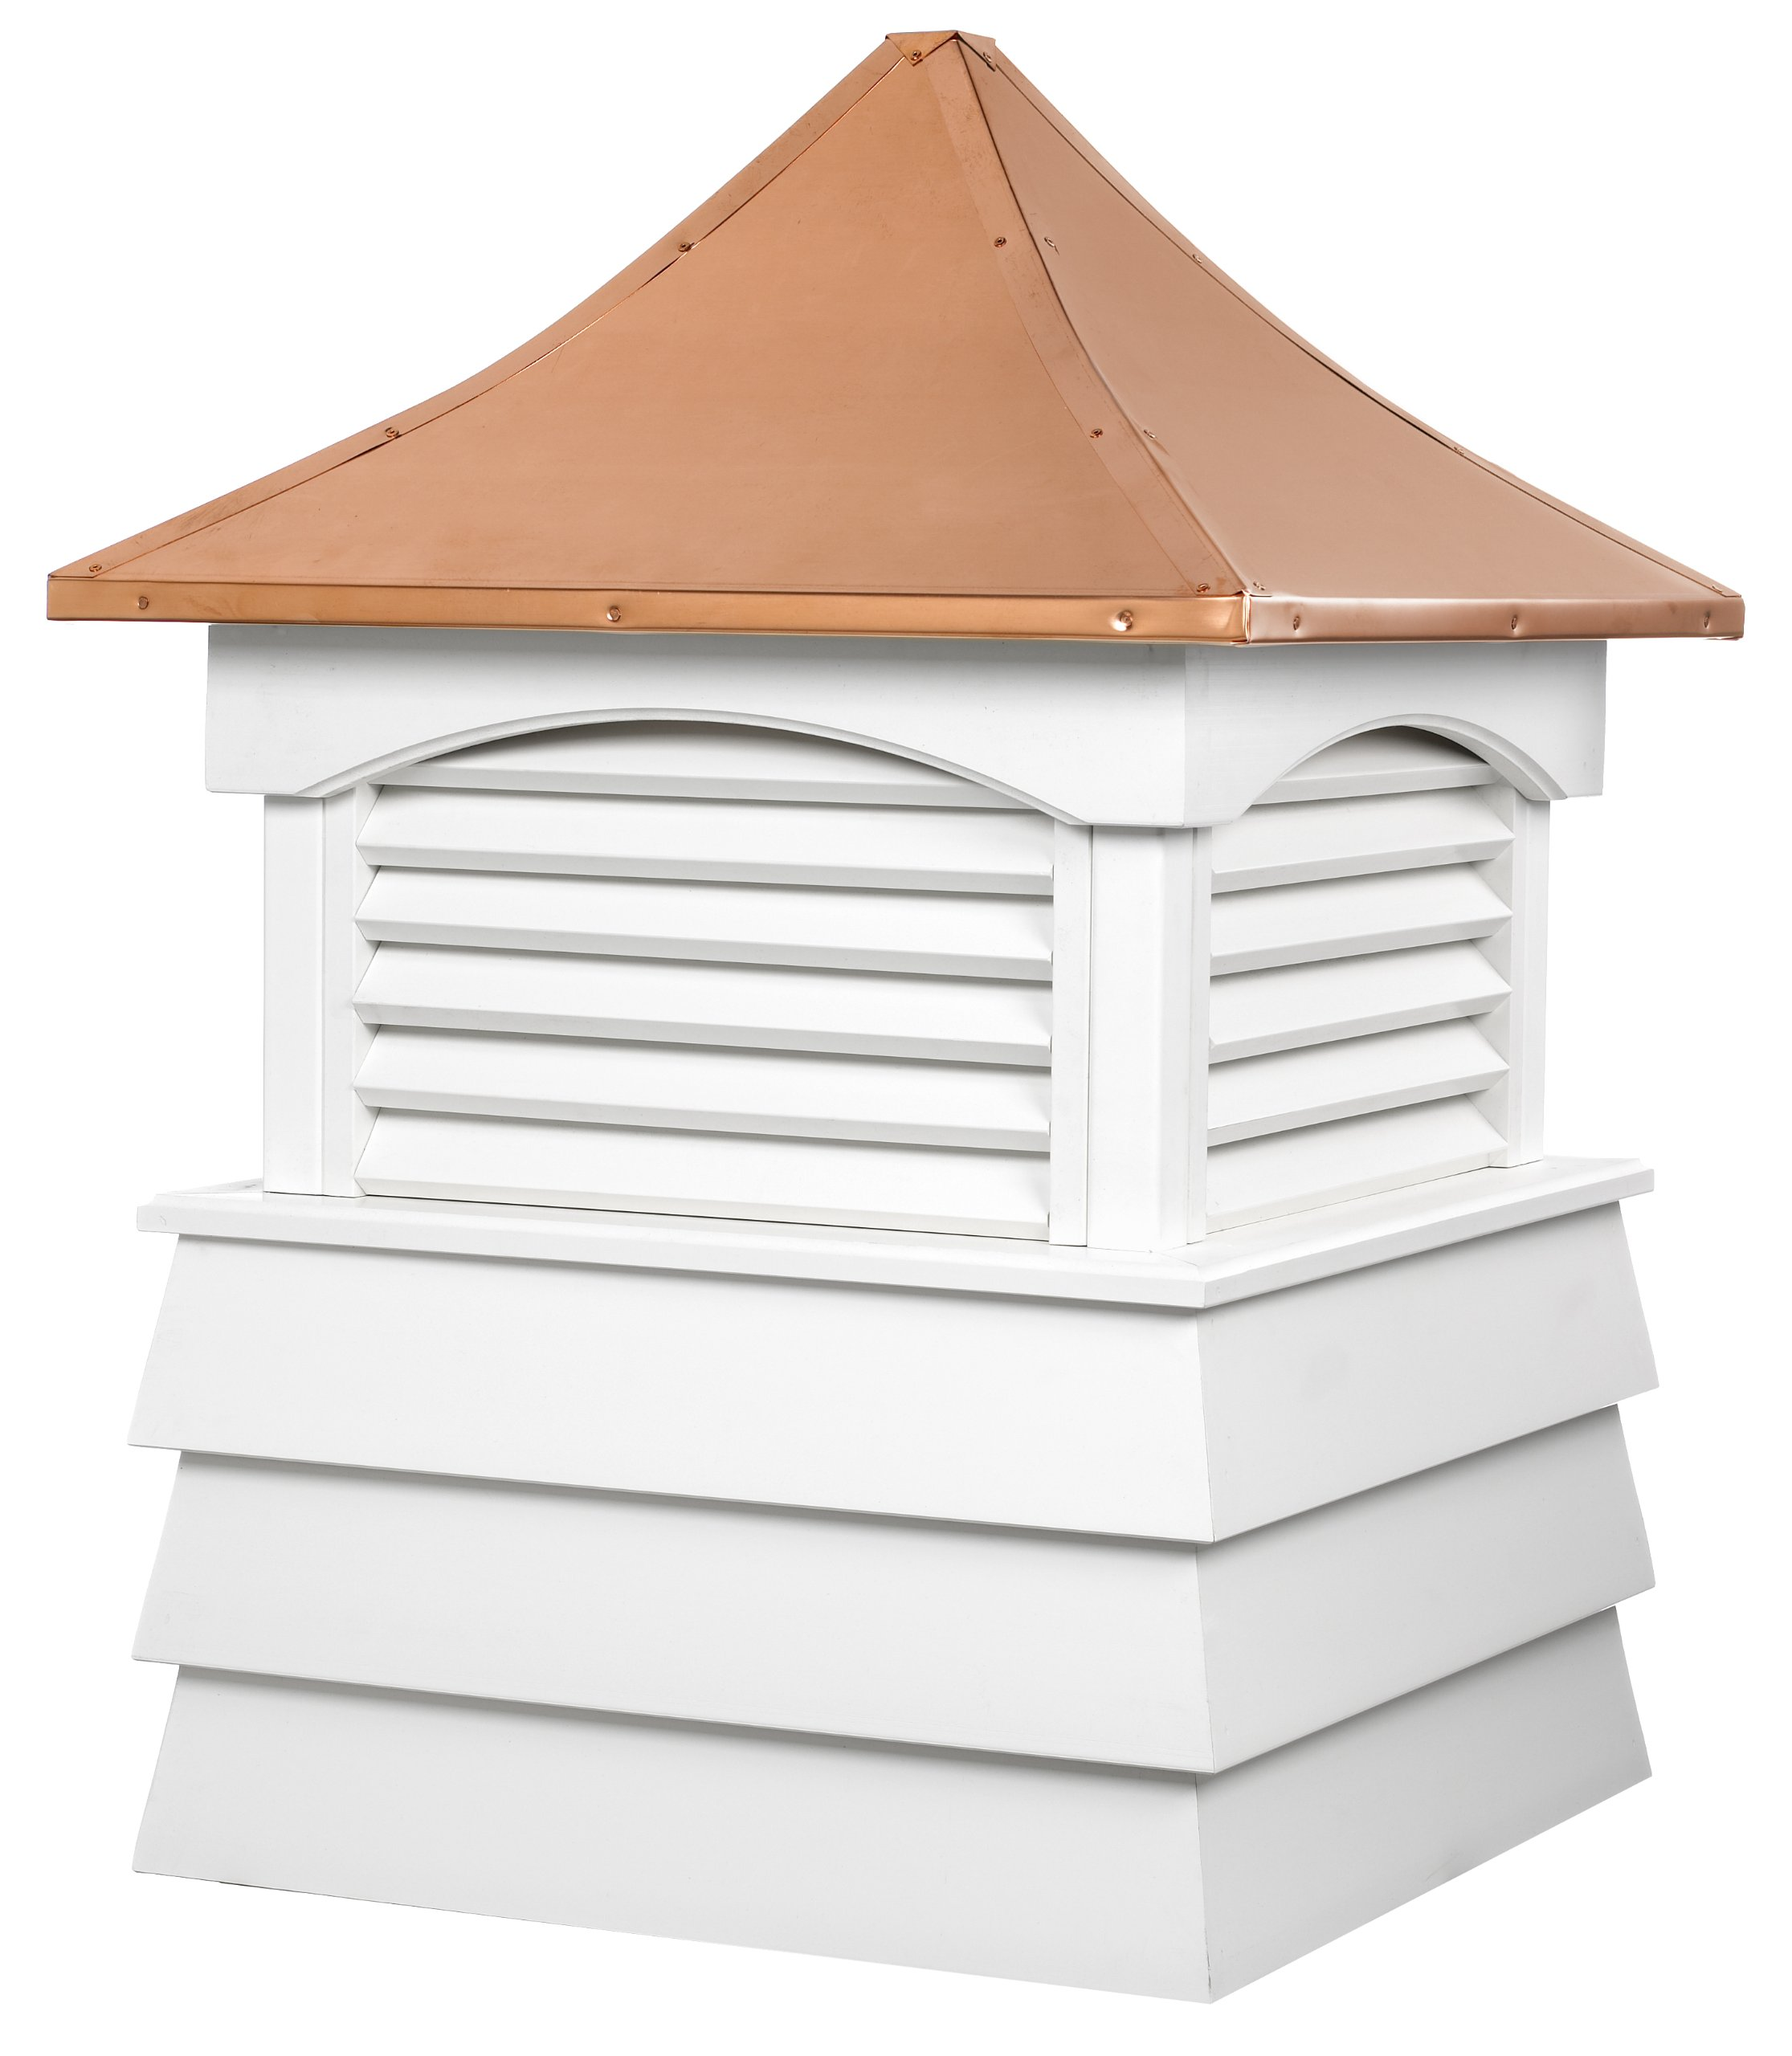 Good Directions Sherwood Vinyl Shiplap Cupola with Copper Roof 54'' x 81''